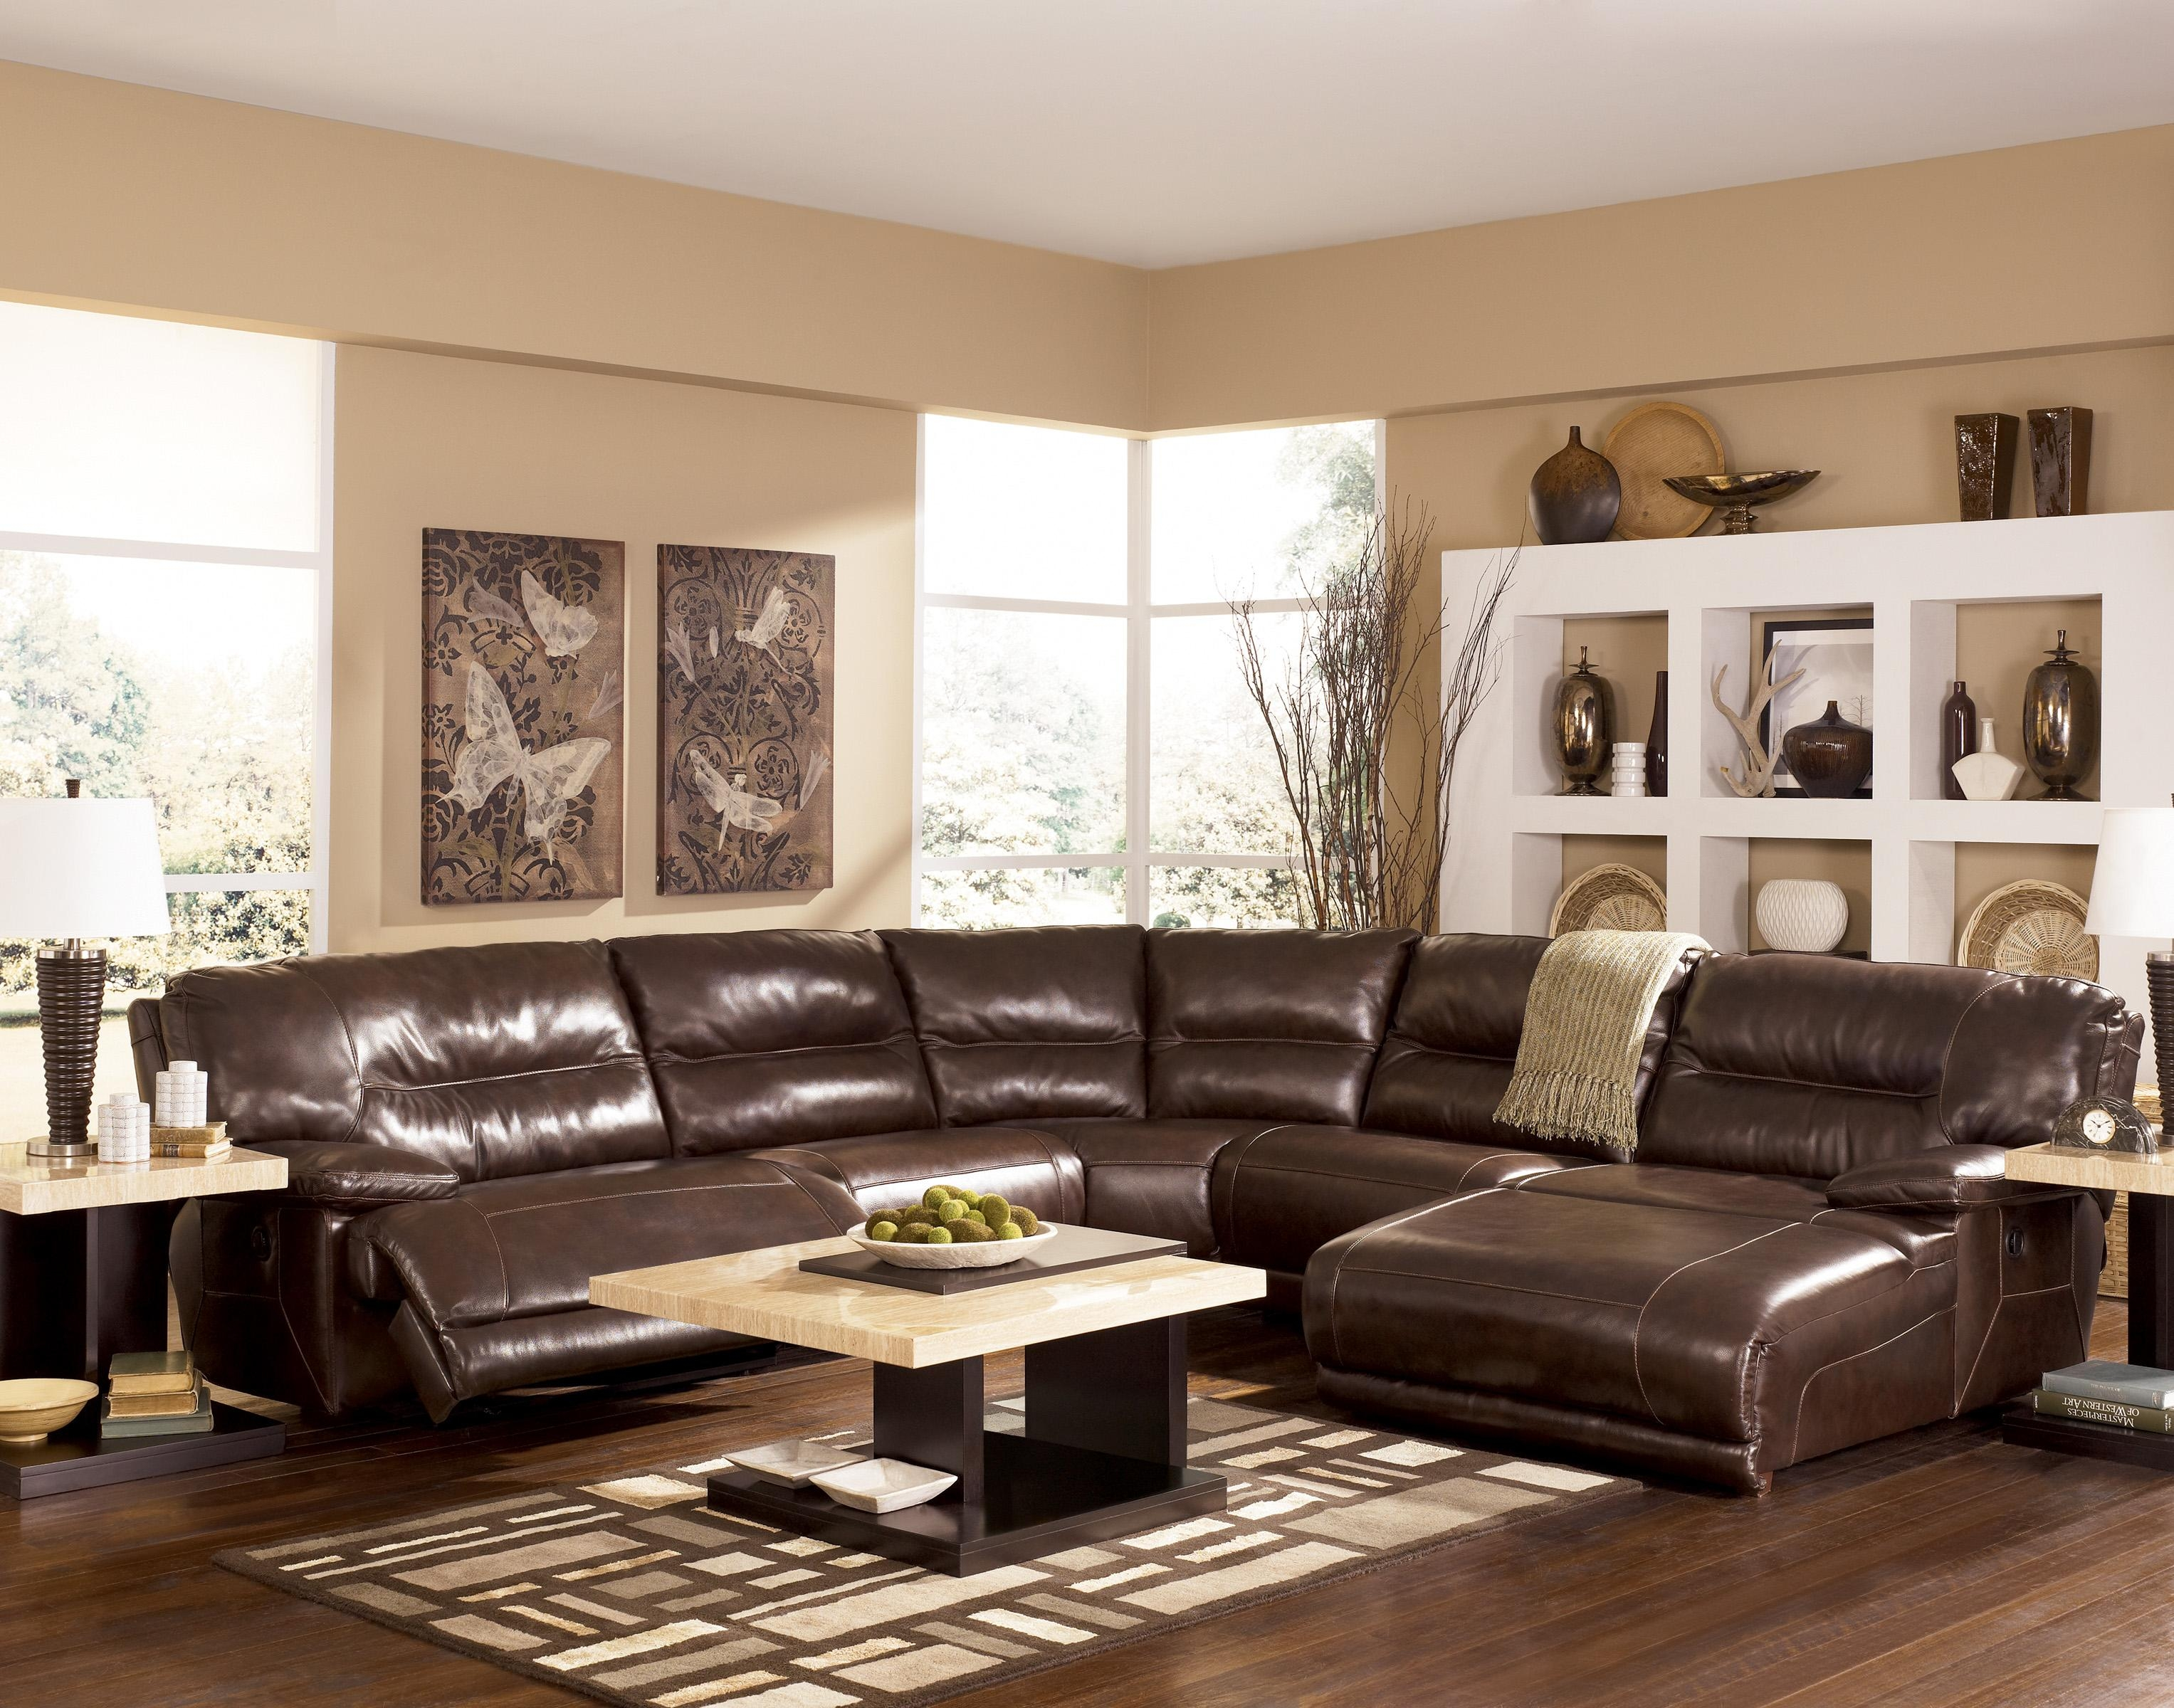 Ashley Furniture Leather Sectional Sofa 12 With Ashley Furniture Regarding Ashley Furniture Leather Sectional Sofas (View 15 of 20)